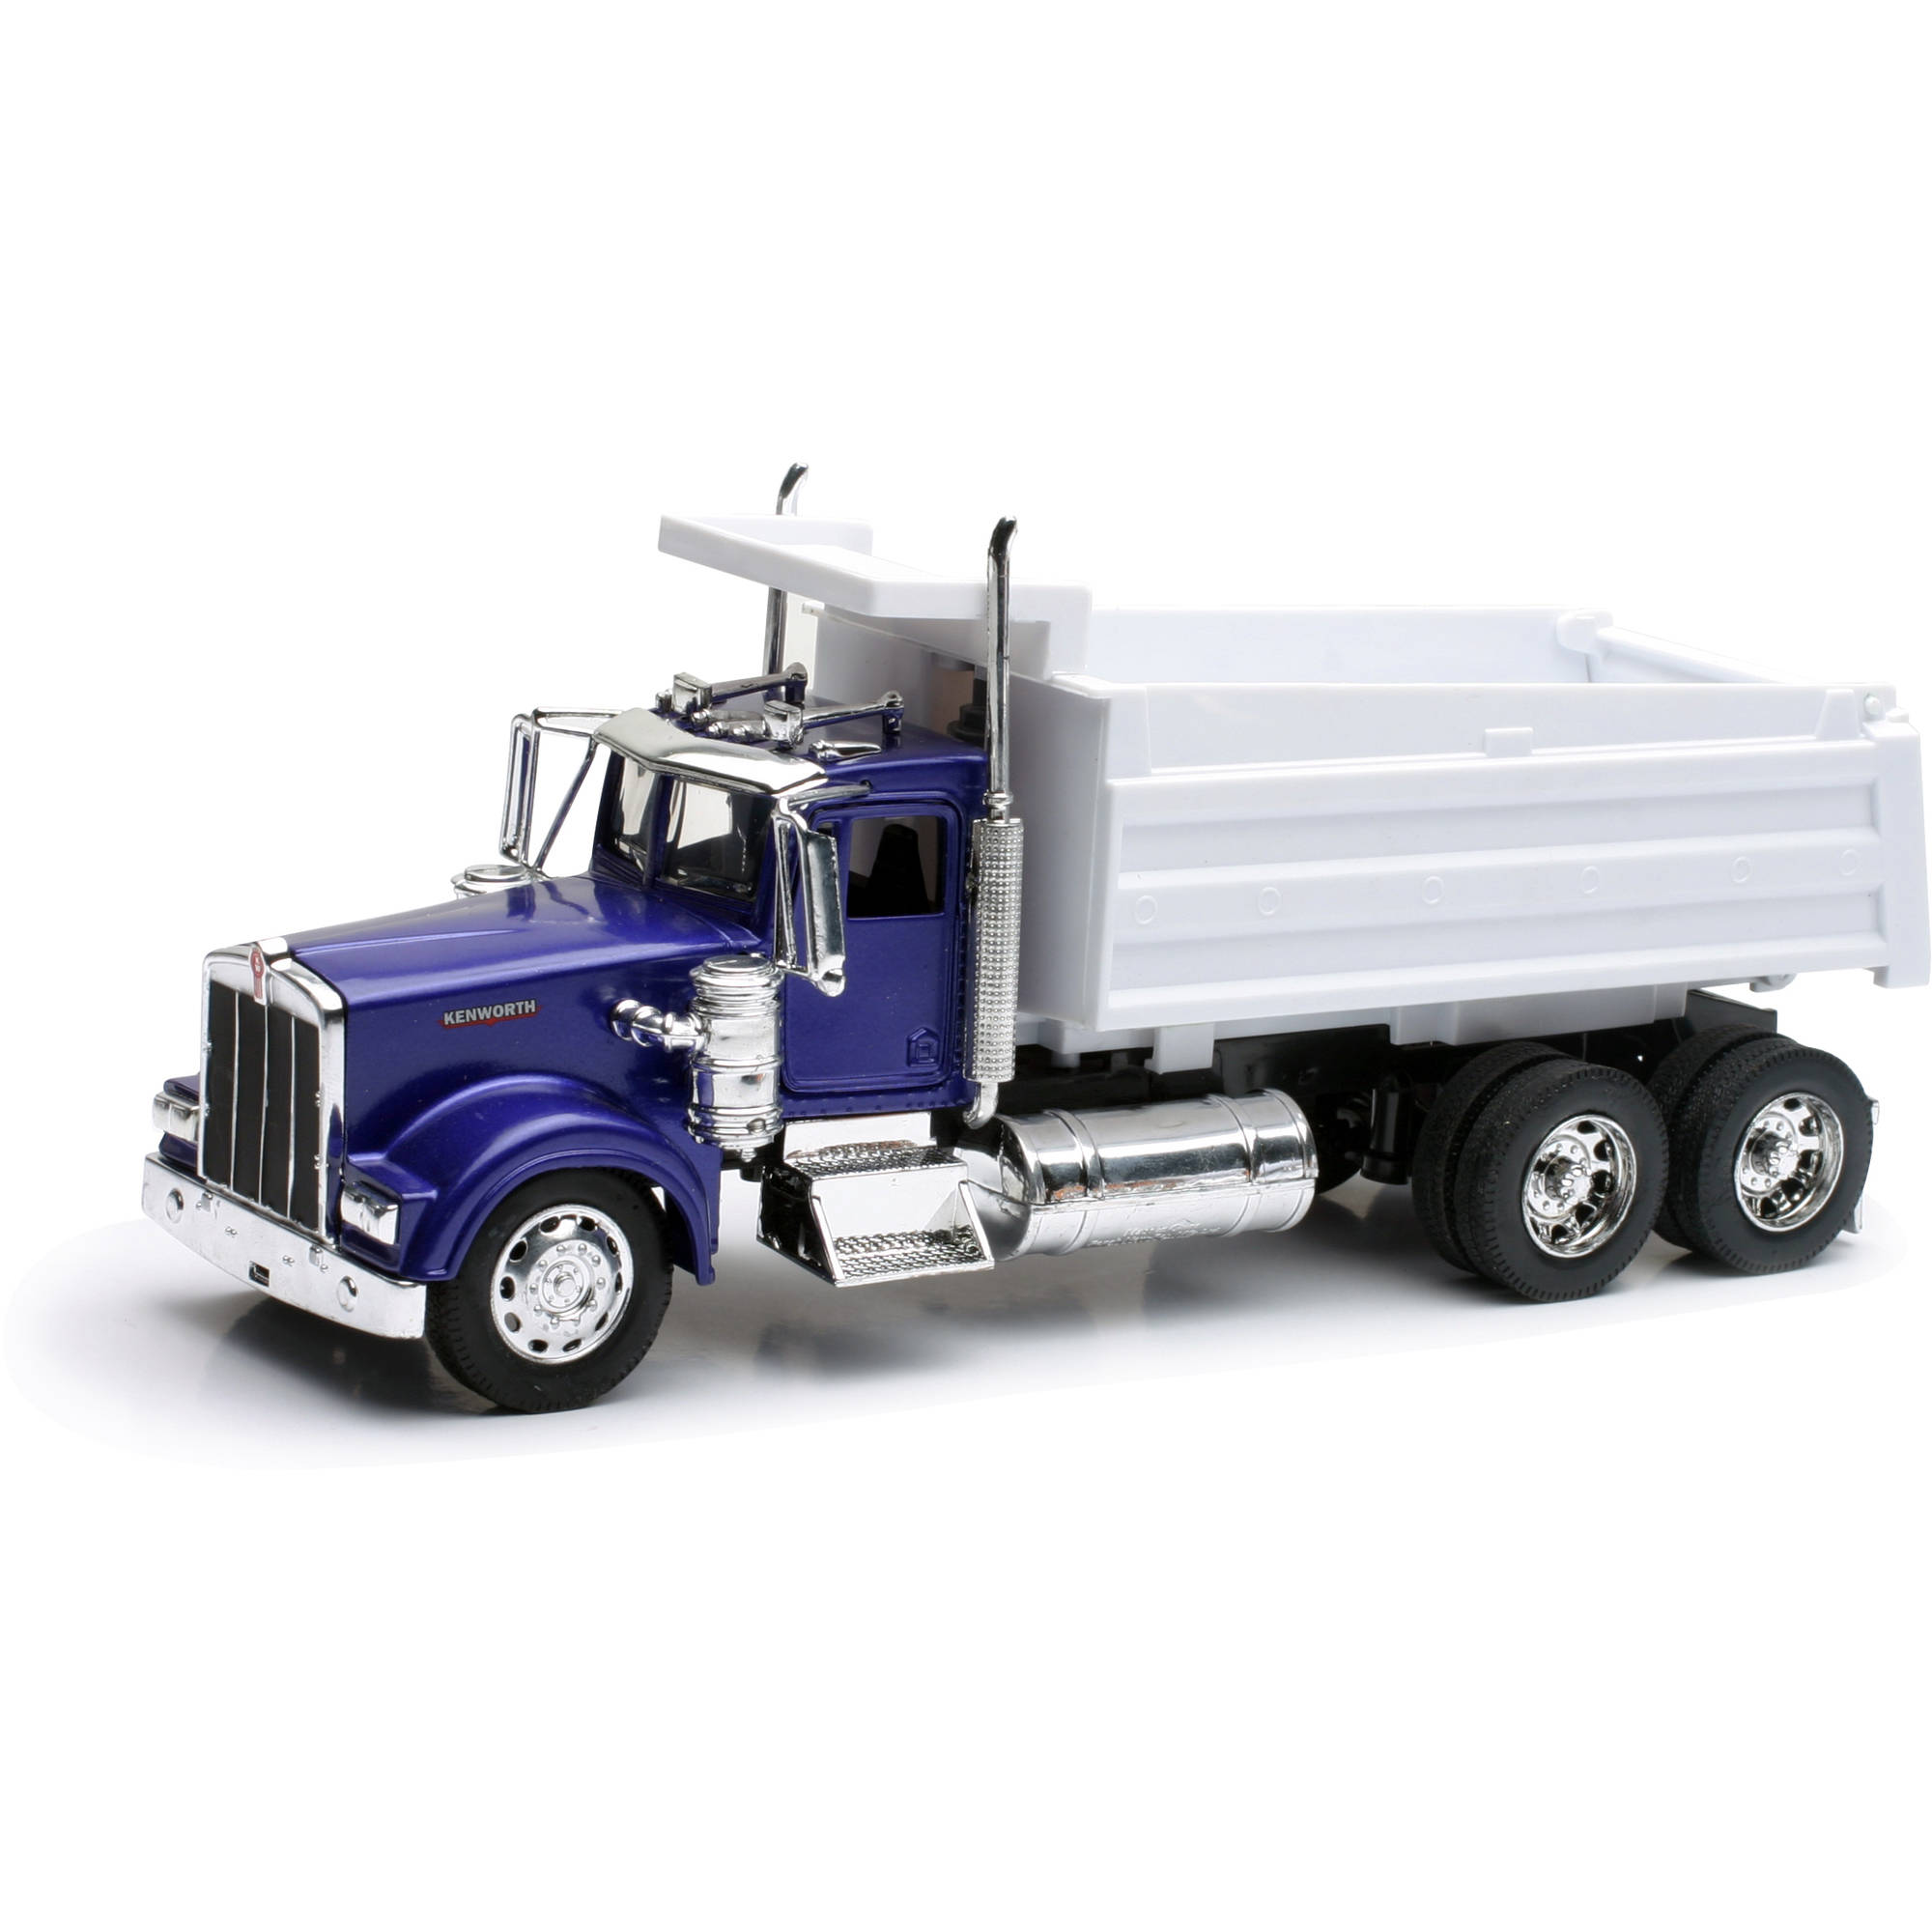 1:32 Scale Die-Cast Kenworth W900 Dump Truck by New-ray Toys